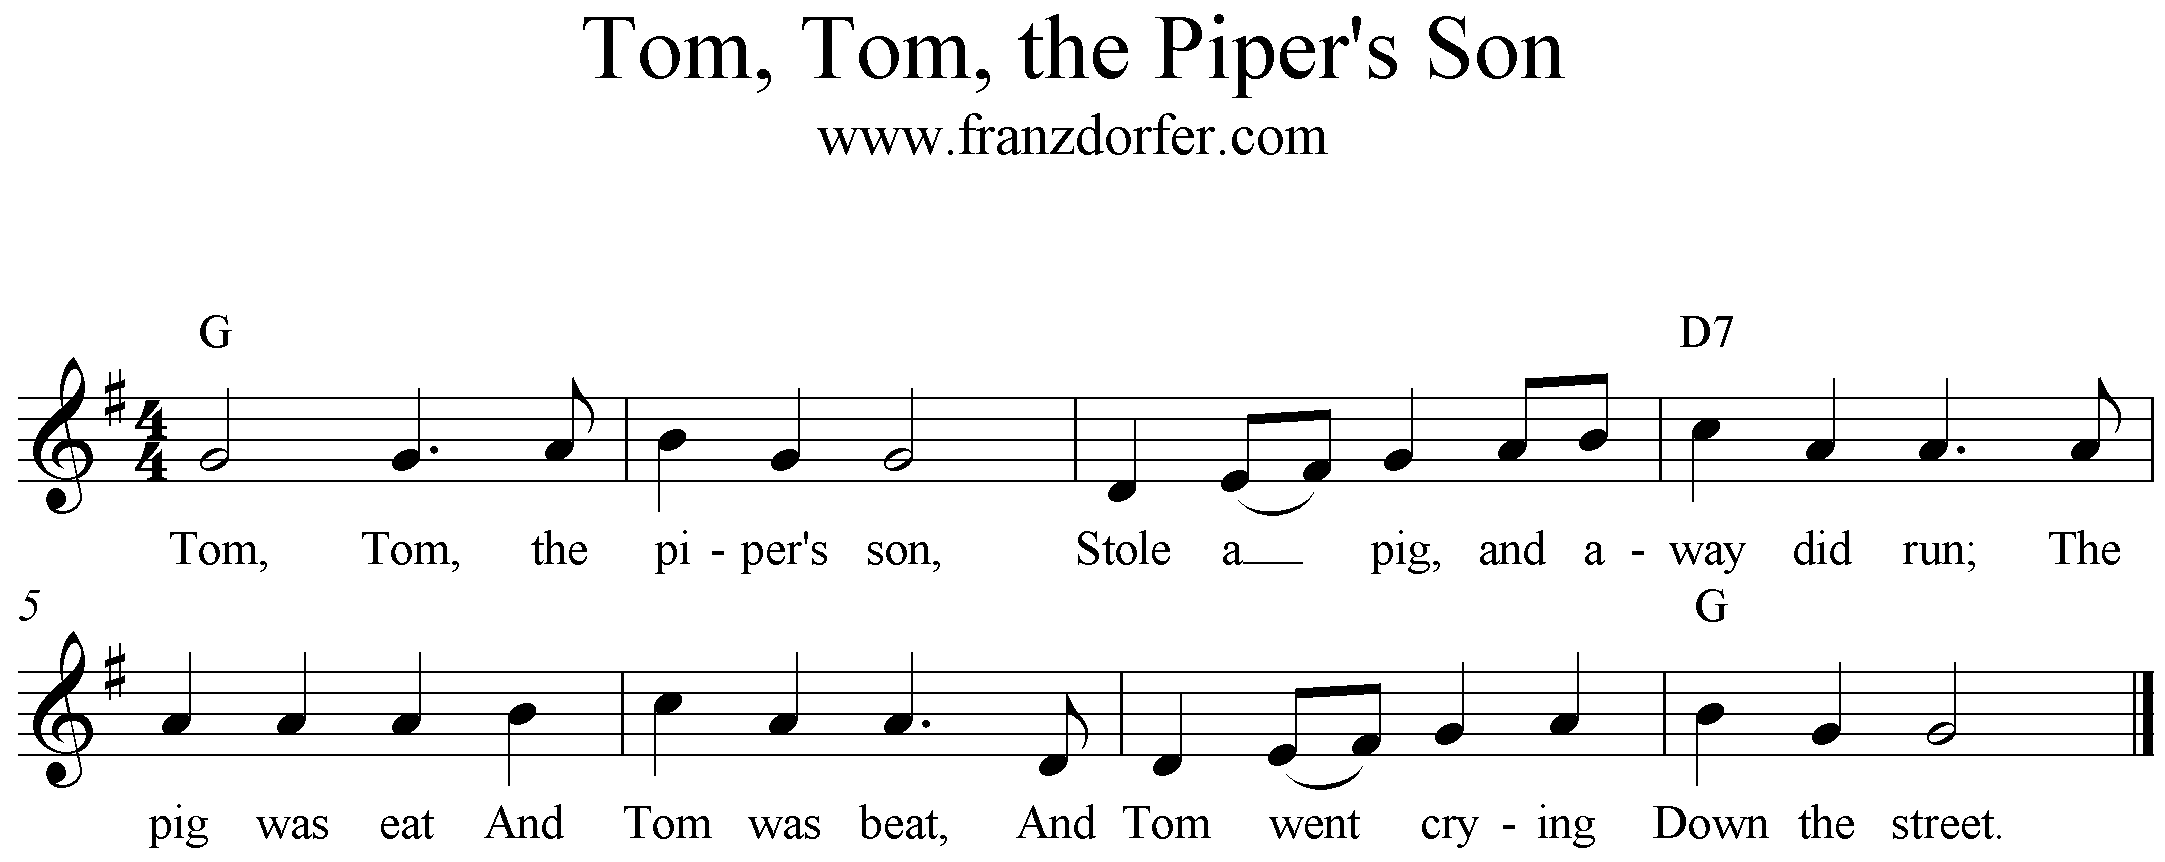 freesheet music Tom, Tom, The Piper's Son